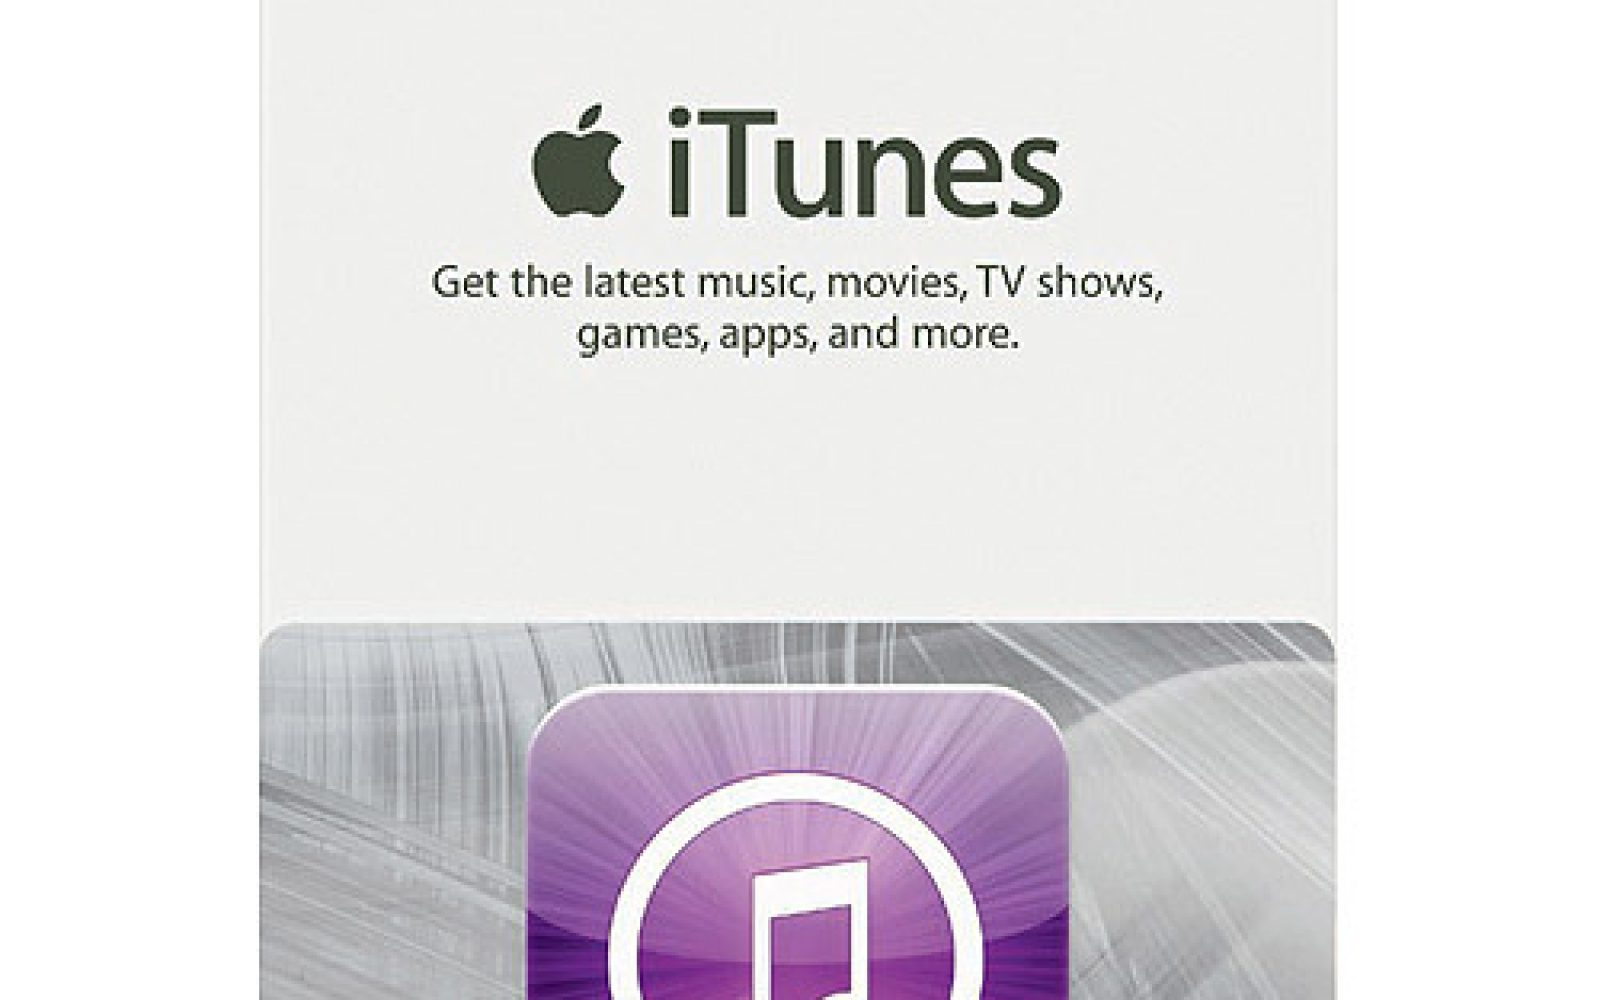 $100 iTunes gift card for $85: Save 15% on future app, music